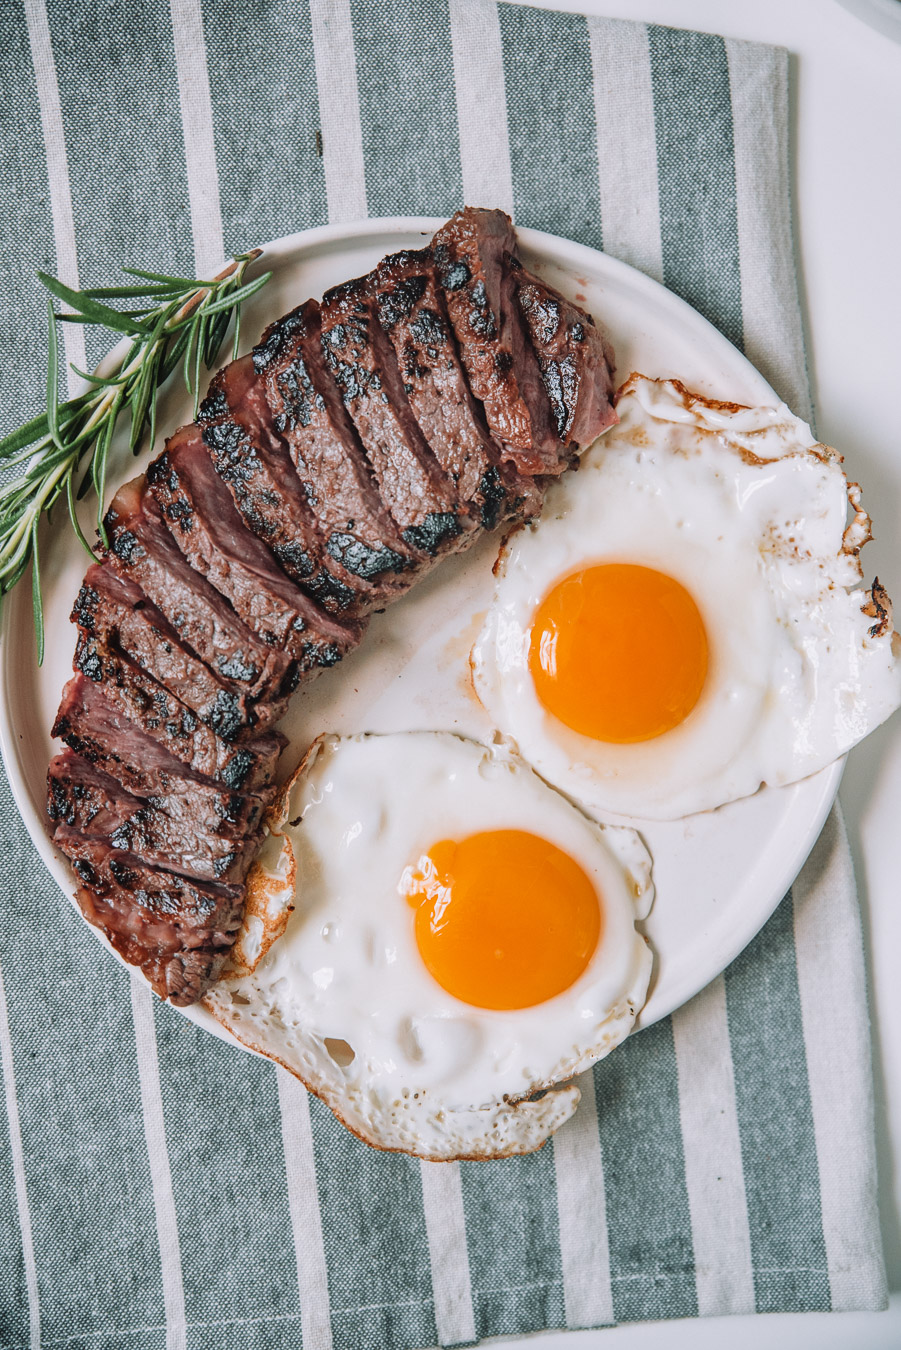 Rosemary steak and eggs on a white plate